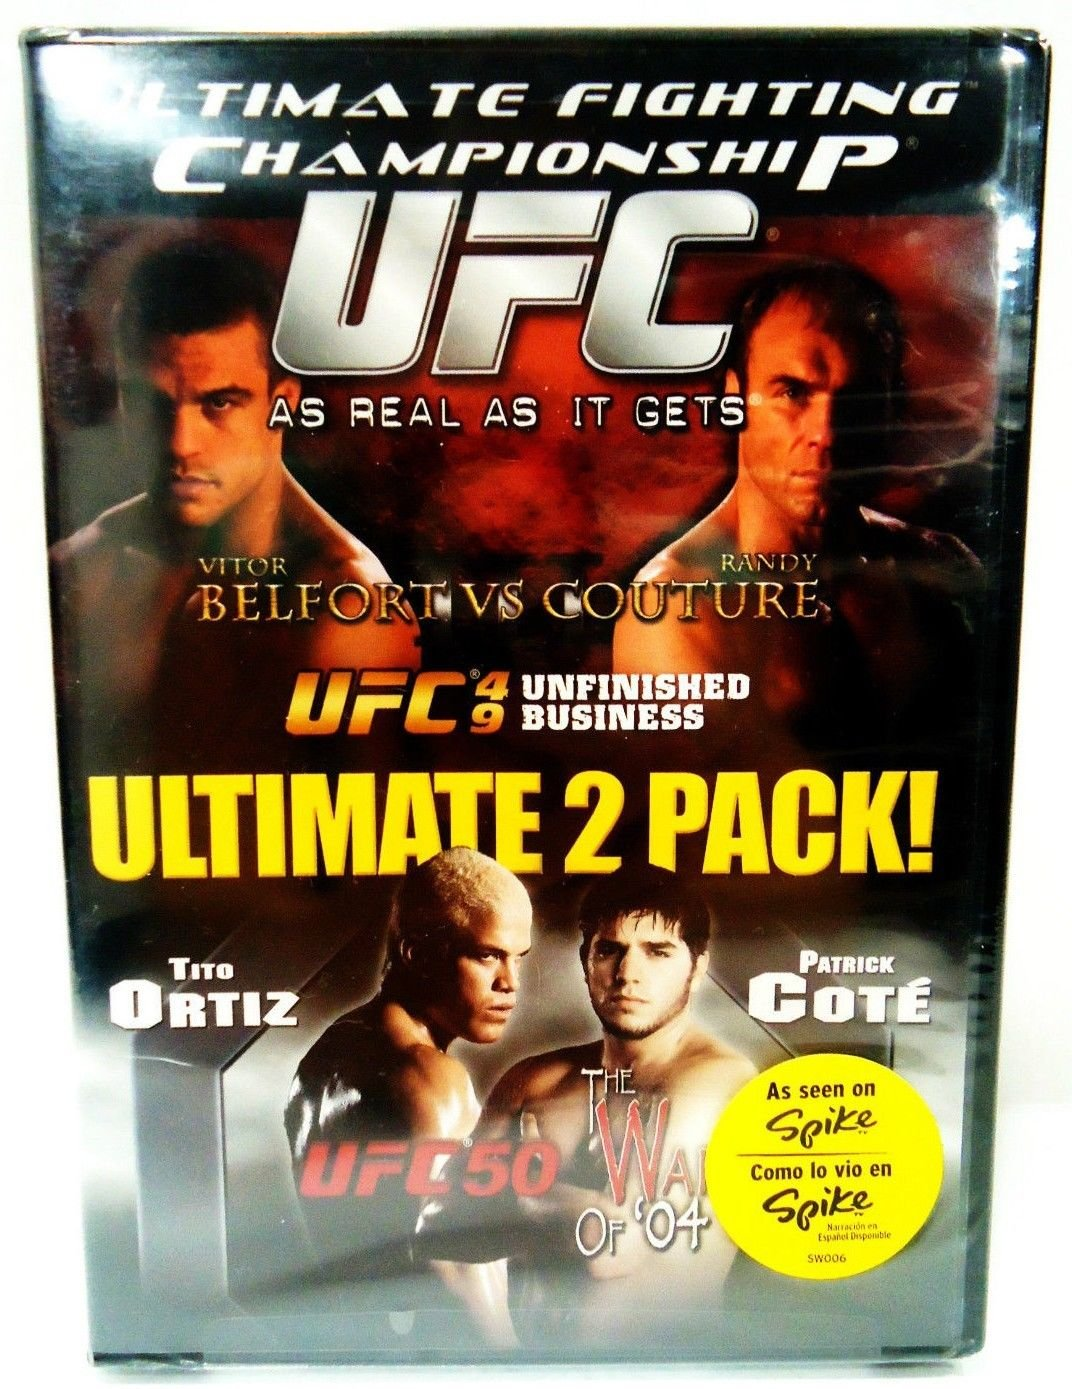 UFC 49 - DVD - 2 PACK - RANDY COUTURE - UFC 50 - TITO ORTIZ - MMA - NEW - SEALED